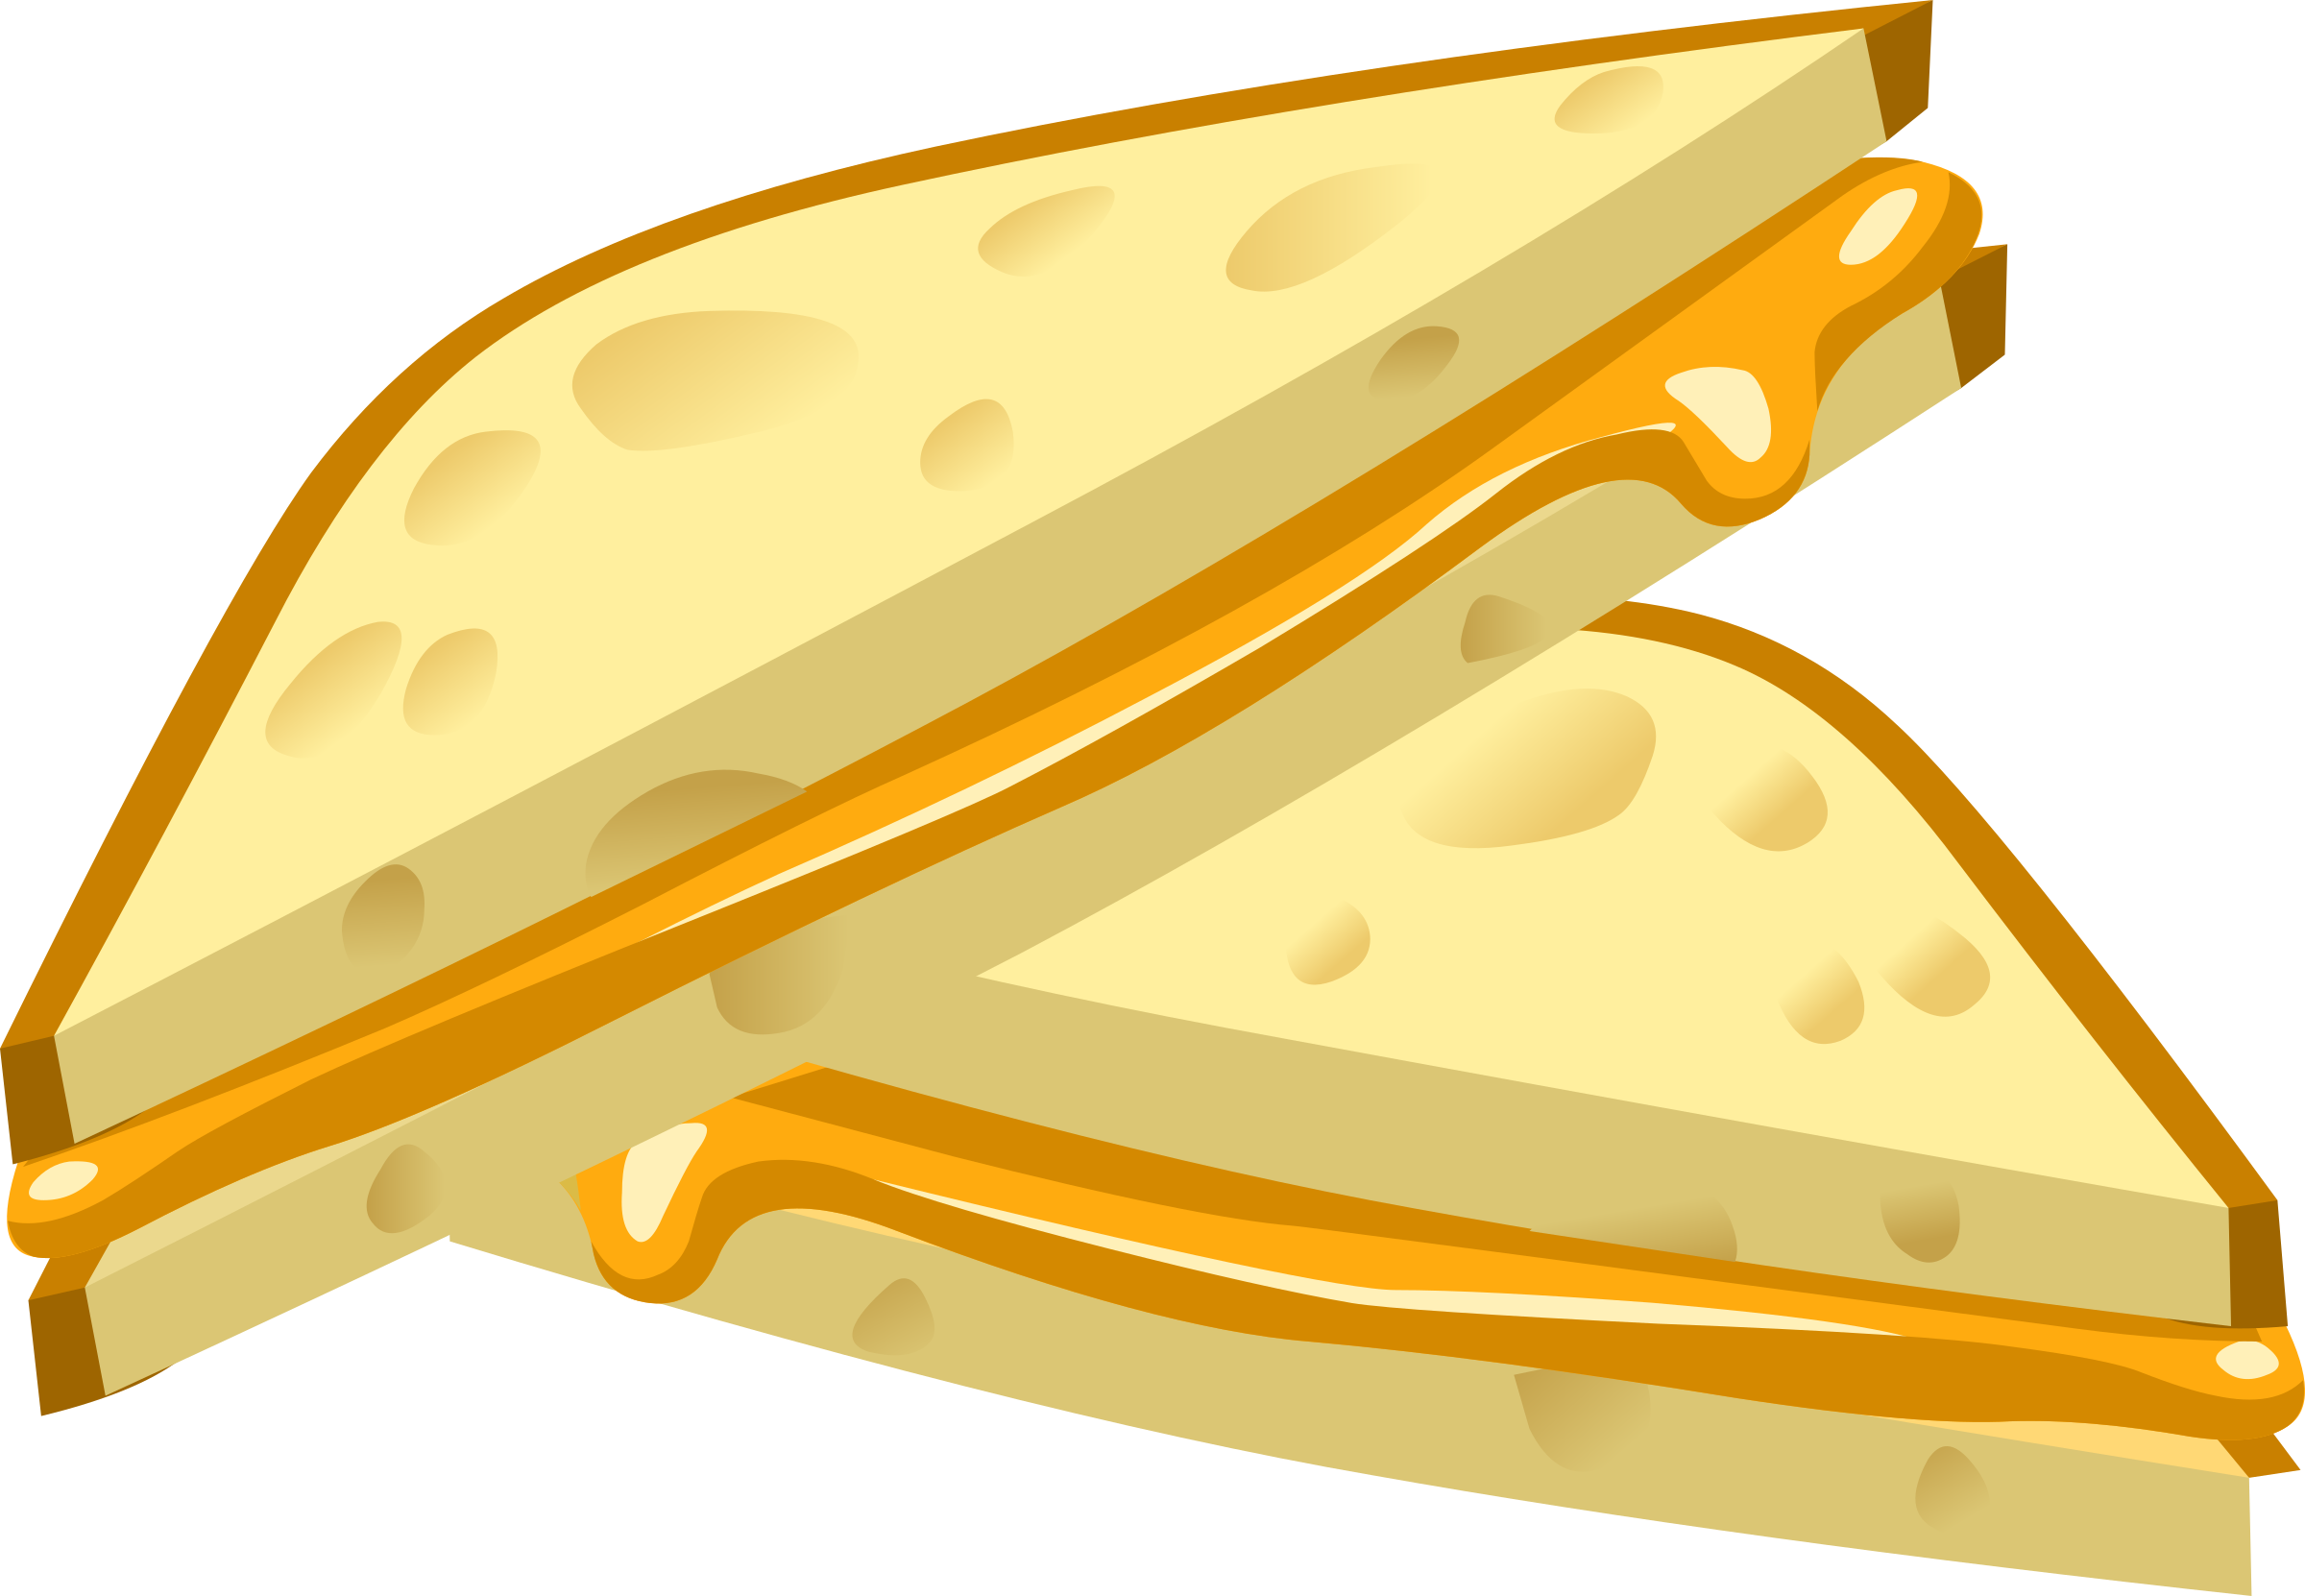 vector royalty free stock Food icons png free. Cheese clipart grilled cheese.